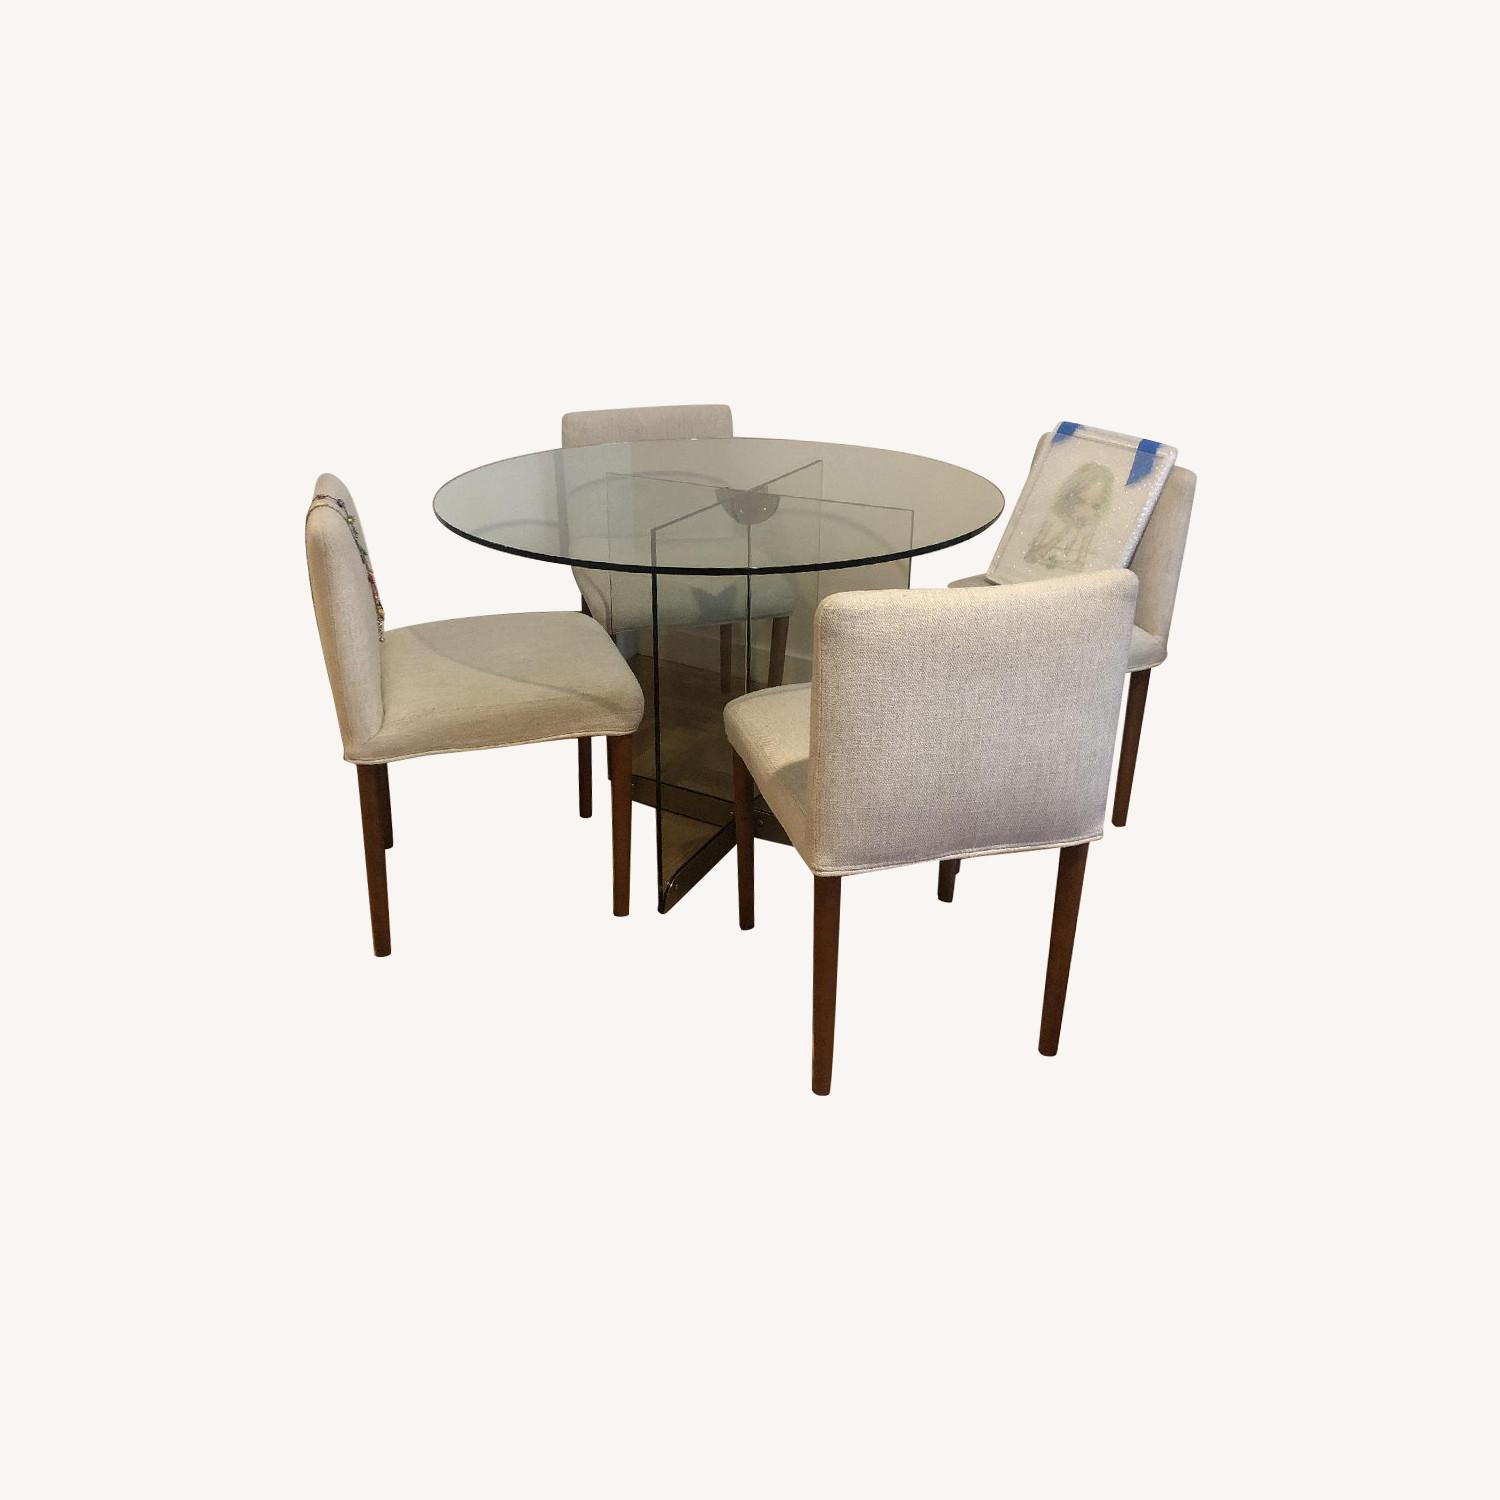 West Elm Glass Dining Table w/ 4 Wood & Fabric Chairs - image-0